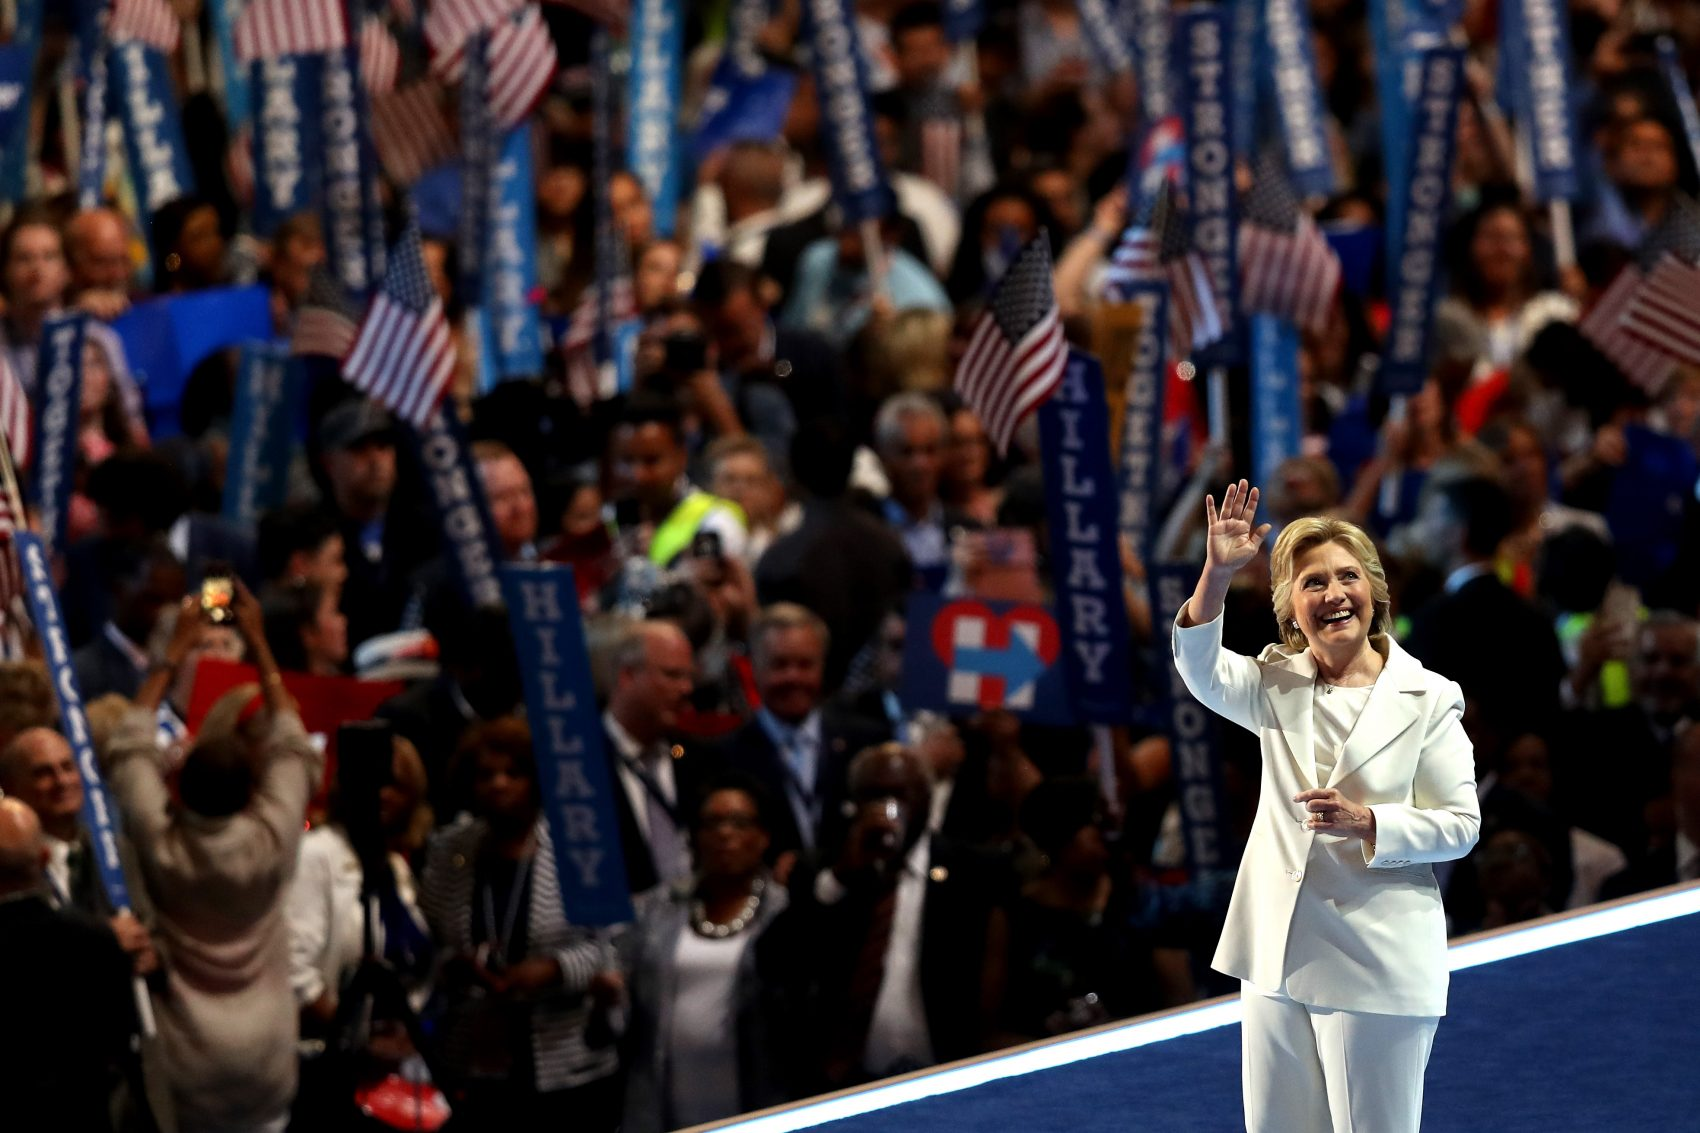 Democratic presidential nominee Hillary Clinton acknowledges the crowd at the end on the fourth day of the Democratic National Convention at the Wells Fargo Center, July 28, 2016 in Philadelphia. (Joe Raedle/Getty Images)